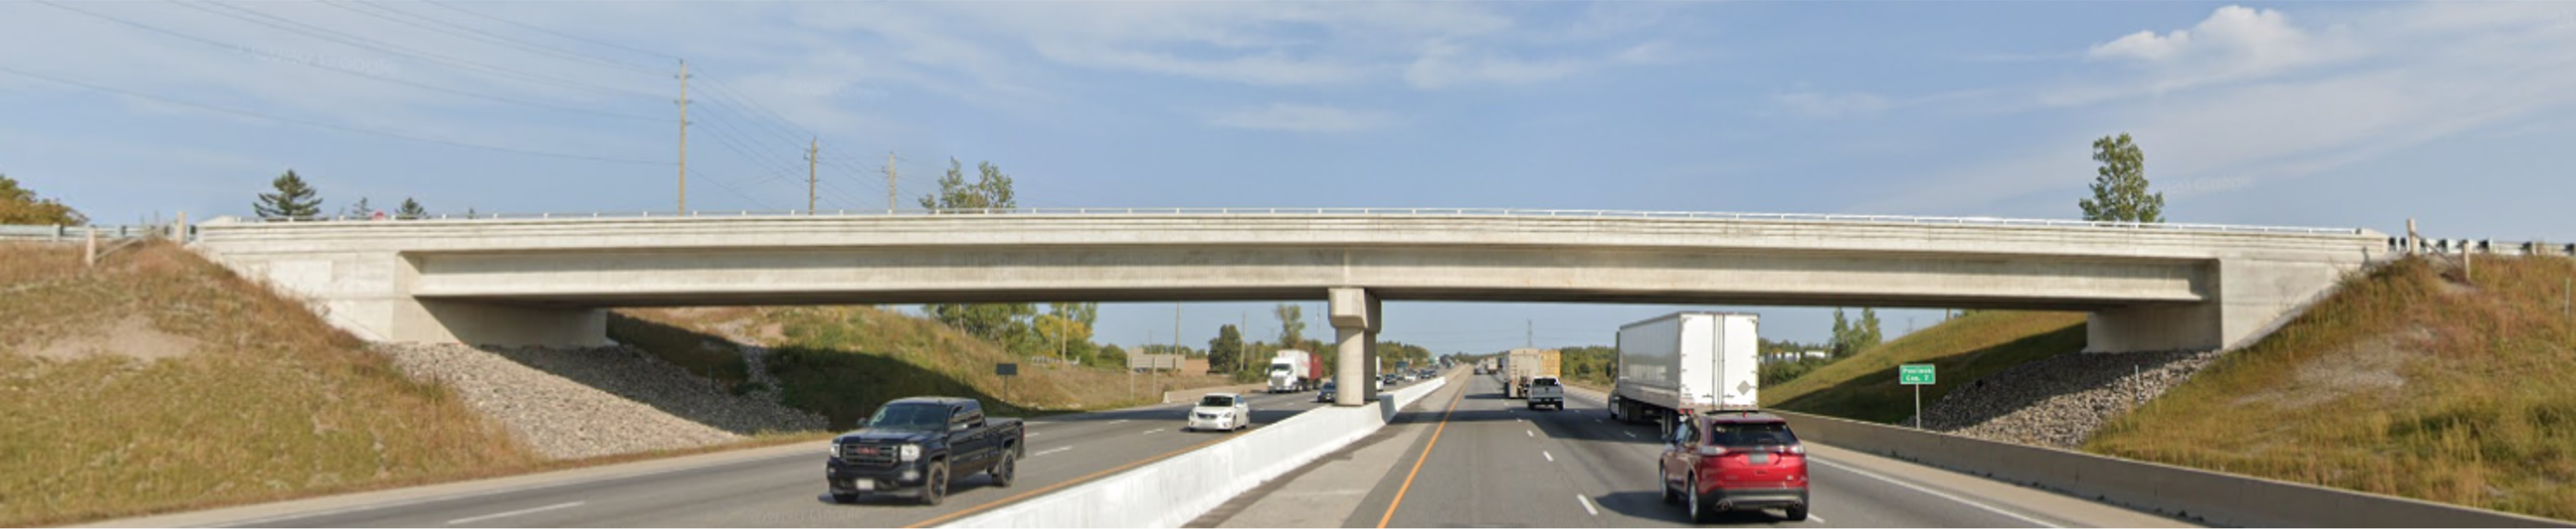 Photo of the new Concession Road 7 Bridge over Highway 401 which was constructed in 2019-2020.